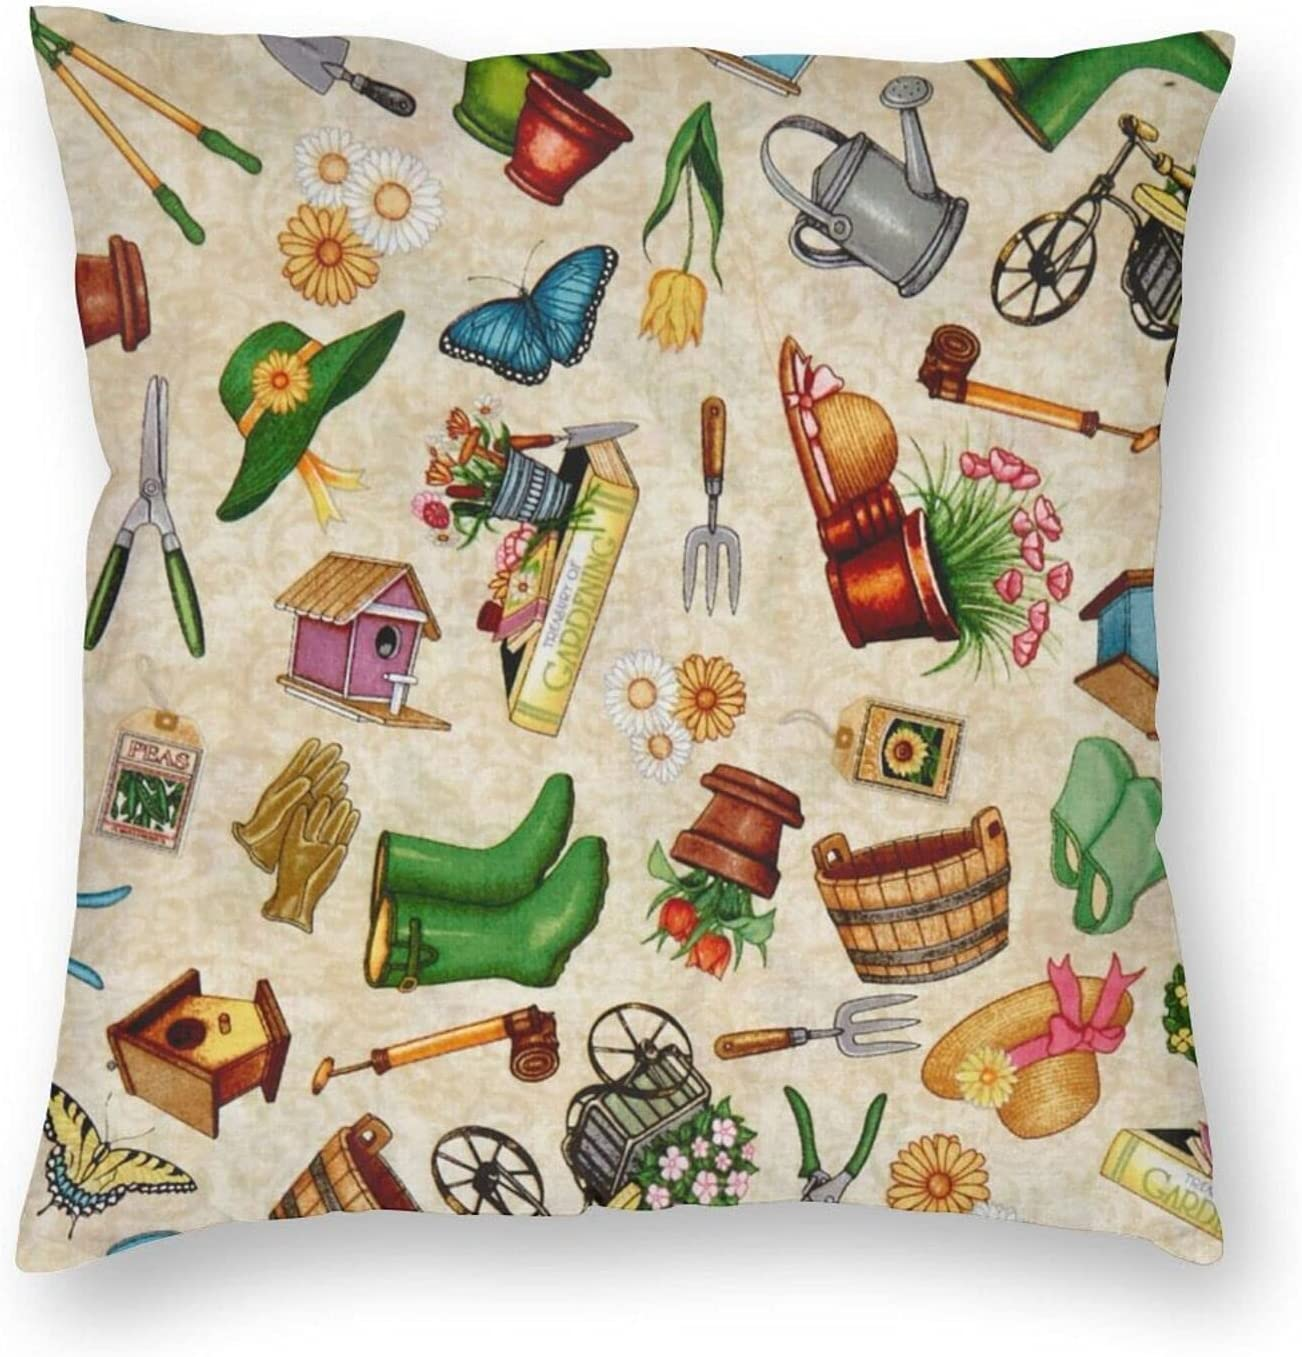 Limited time cheap sale We Grow Everything Gardening Covers Cushion Throw Credence Pillow